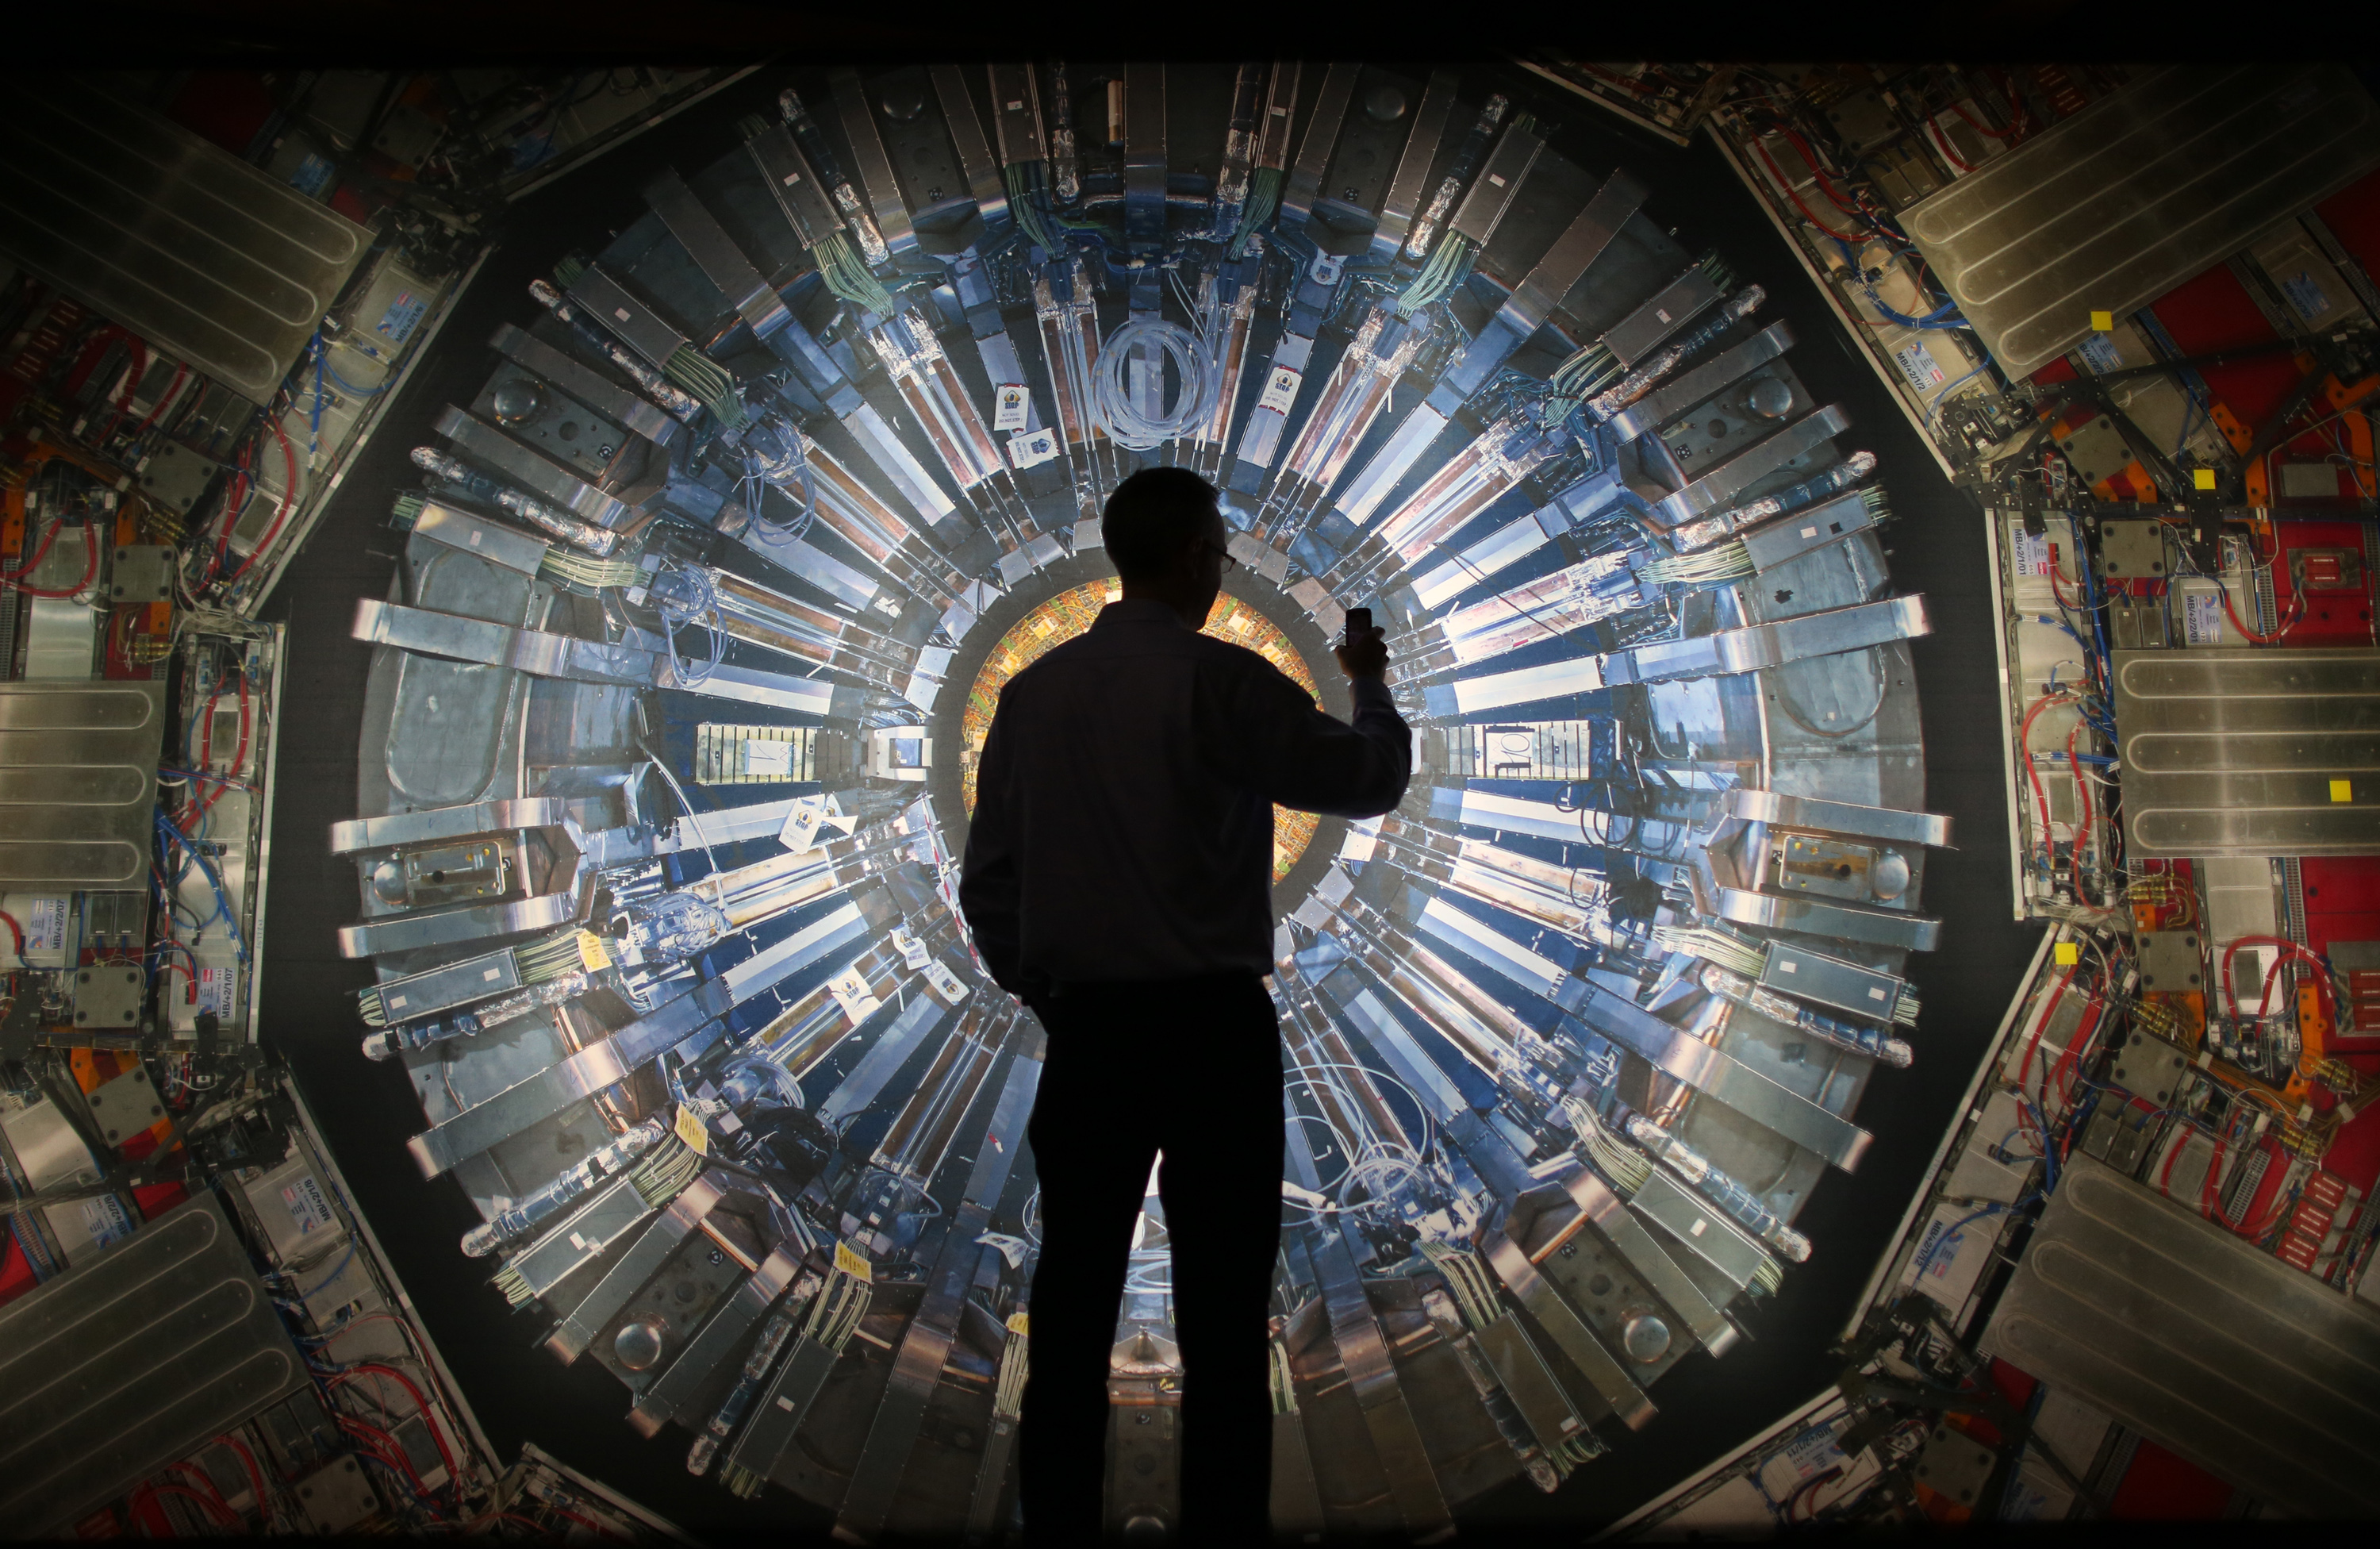 Backlit image of the Large Hadron Collider